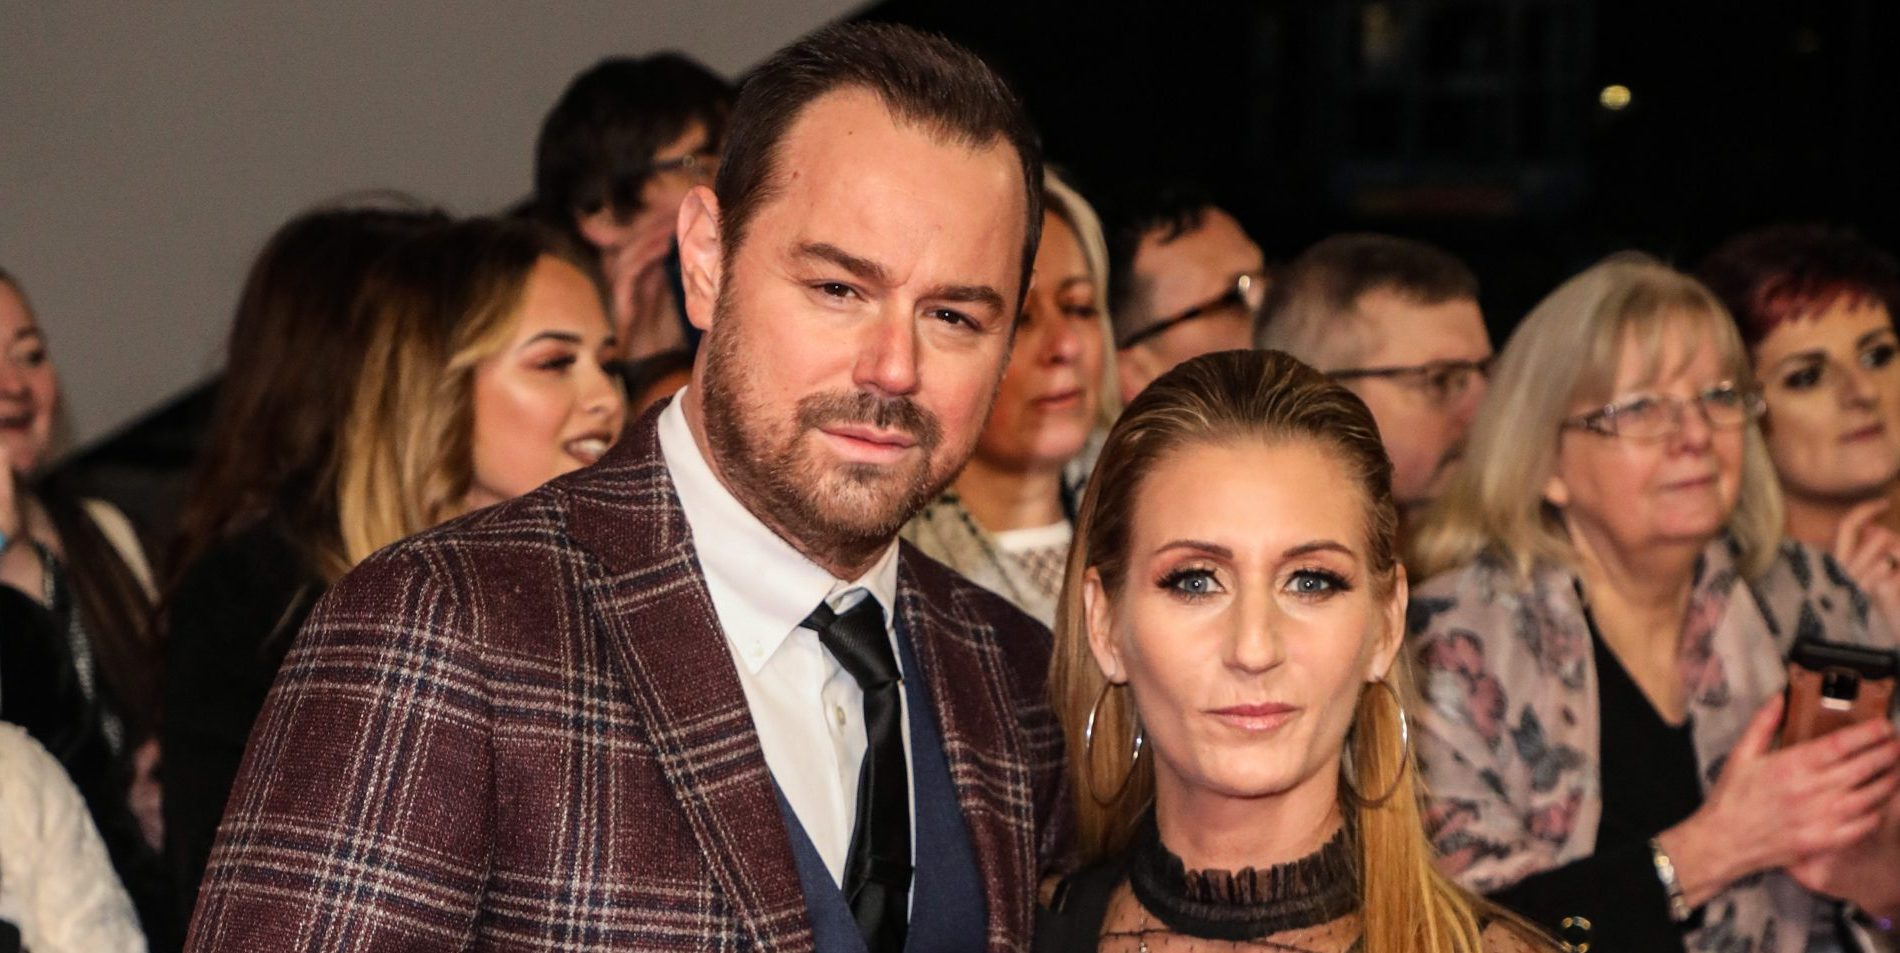 Celebrities attending The National Television Awards 2020 at the 02 Arena in London Pictured: Danny Dyer,Joanne Mas Ref: SPL5144415 280120 NON-EXCLUSIVE Picture by: Brett D. Cove / SplashNews.com Splash News and Pictures Los Angeles: 310-821-2666 New York: 212-619-2666 London: +44 (0)20 7644 7656 Berlin: +49 175 3764 166 photodesk@splashnews.com World Rights